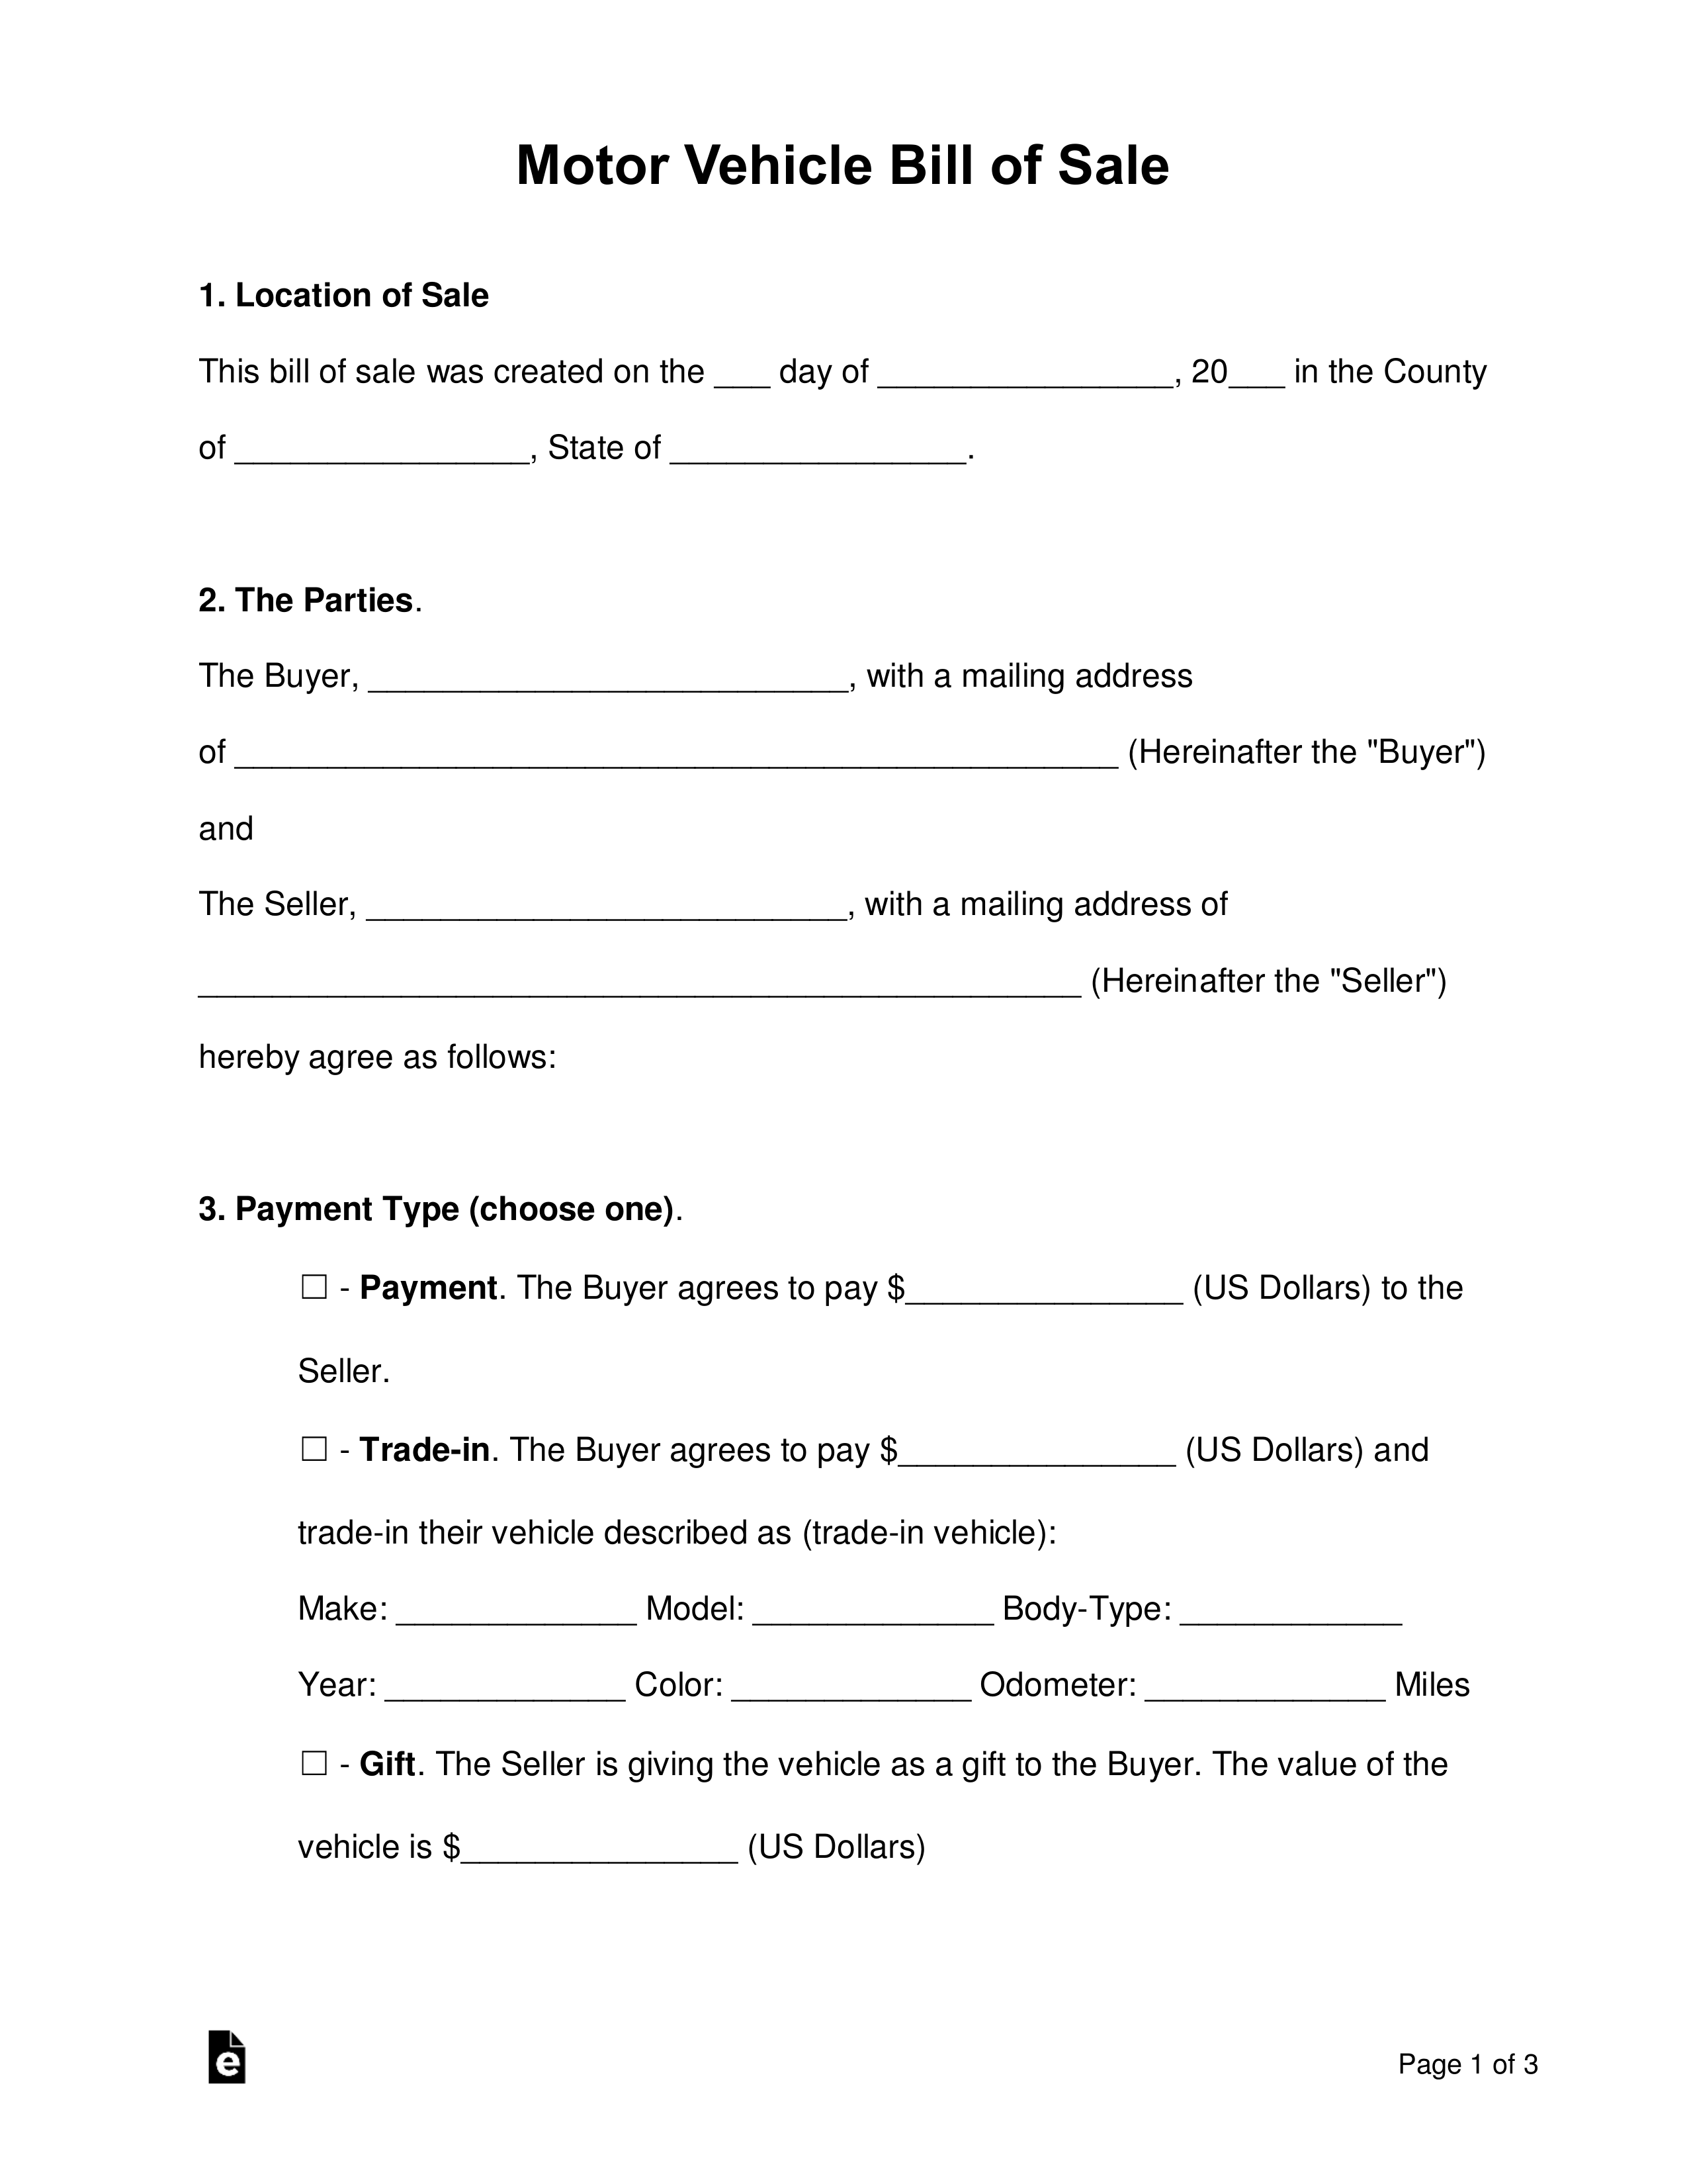 Free Bill Of Sale Forms - Pdf | Word | Eforms – Free